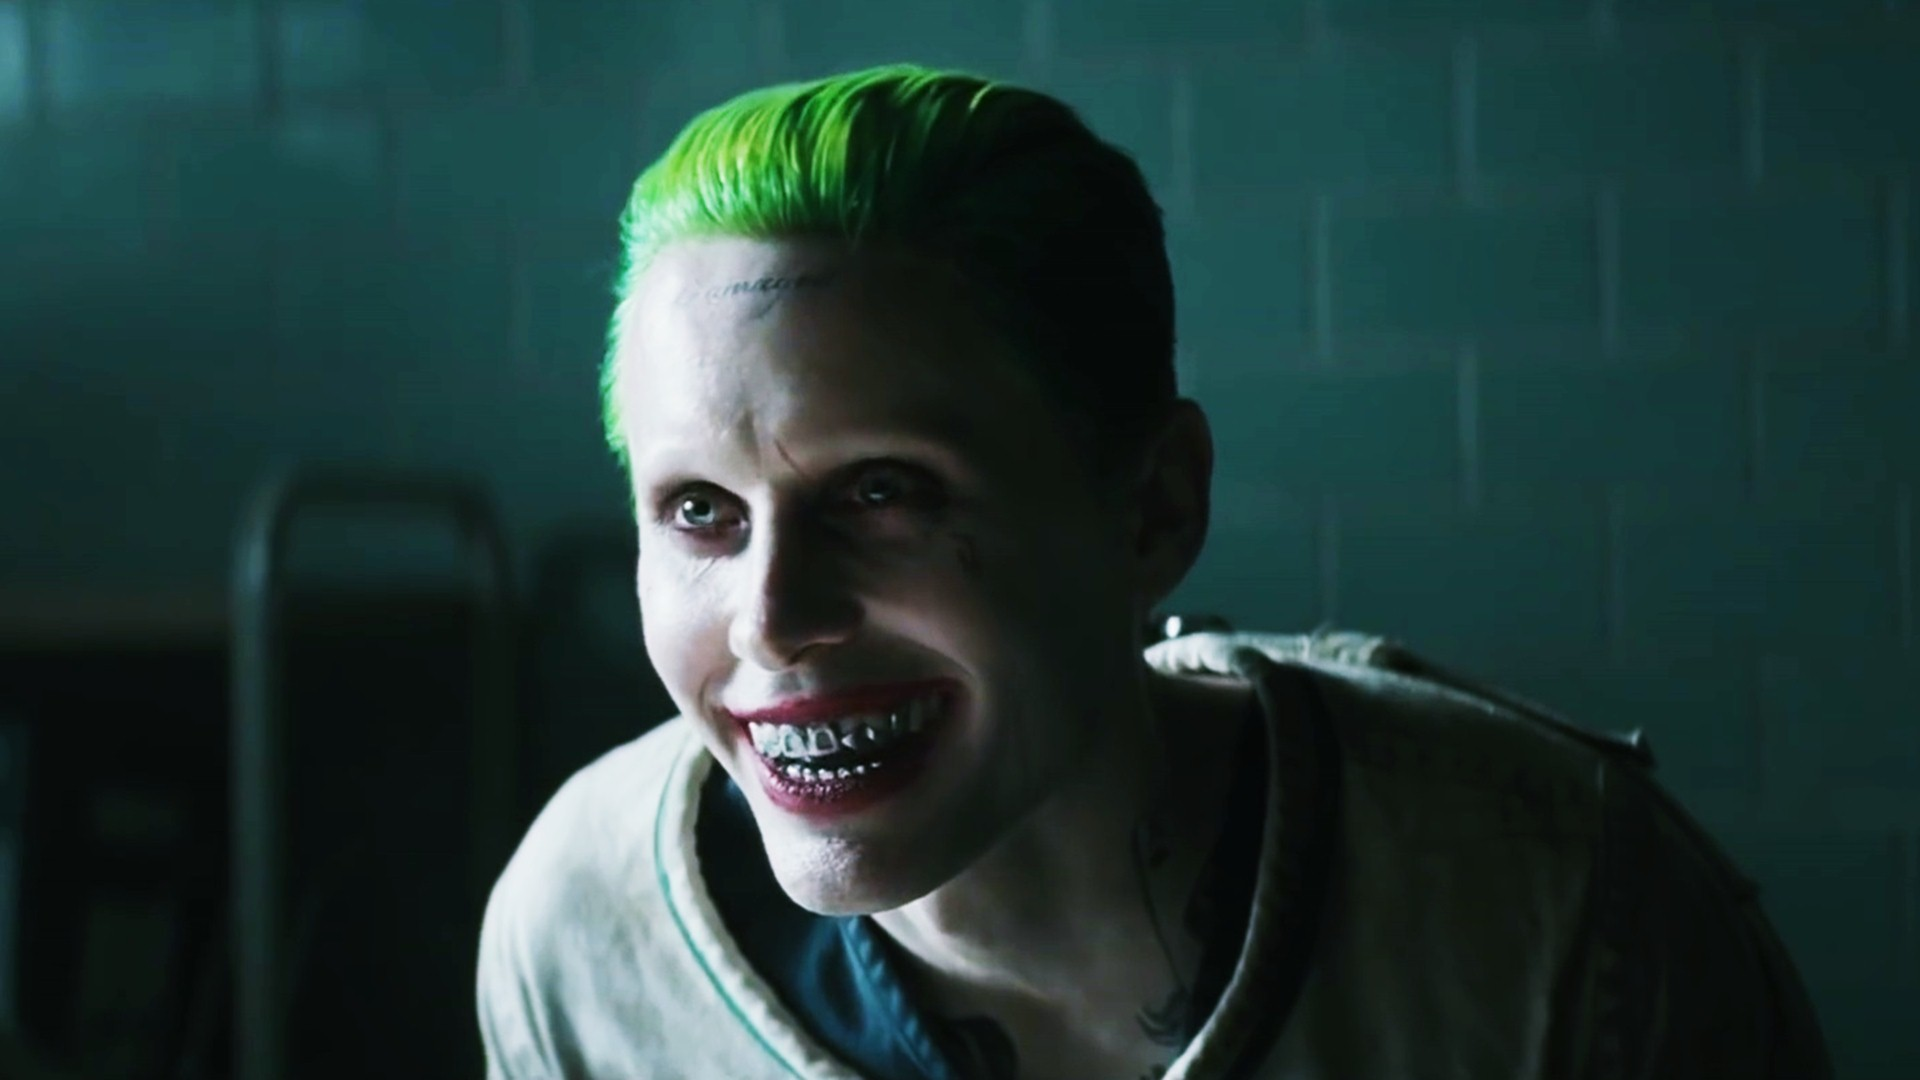 Suicide Squad Joker Wallpaper 73 Images